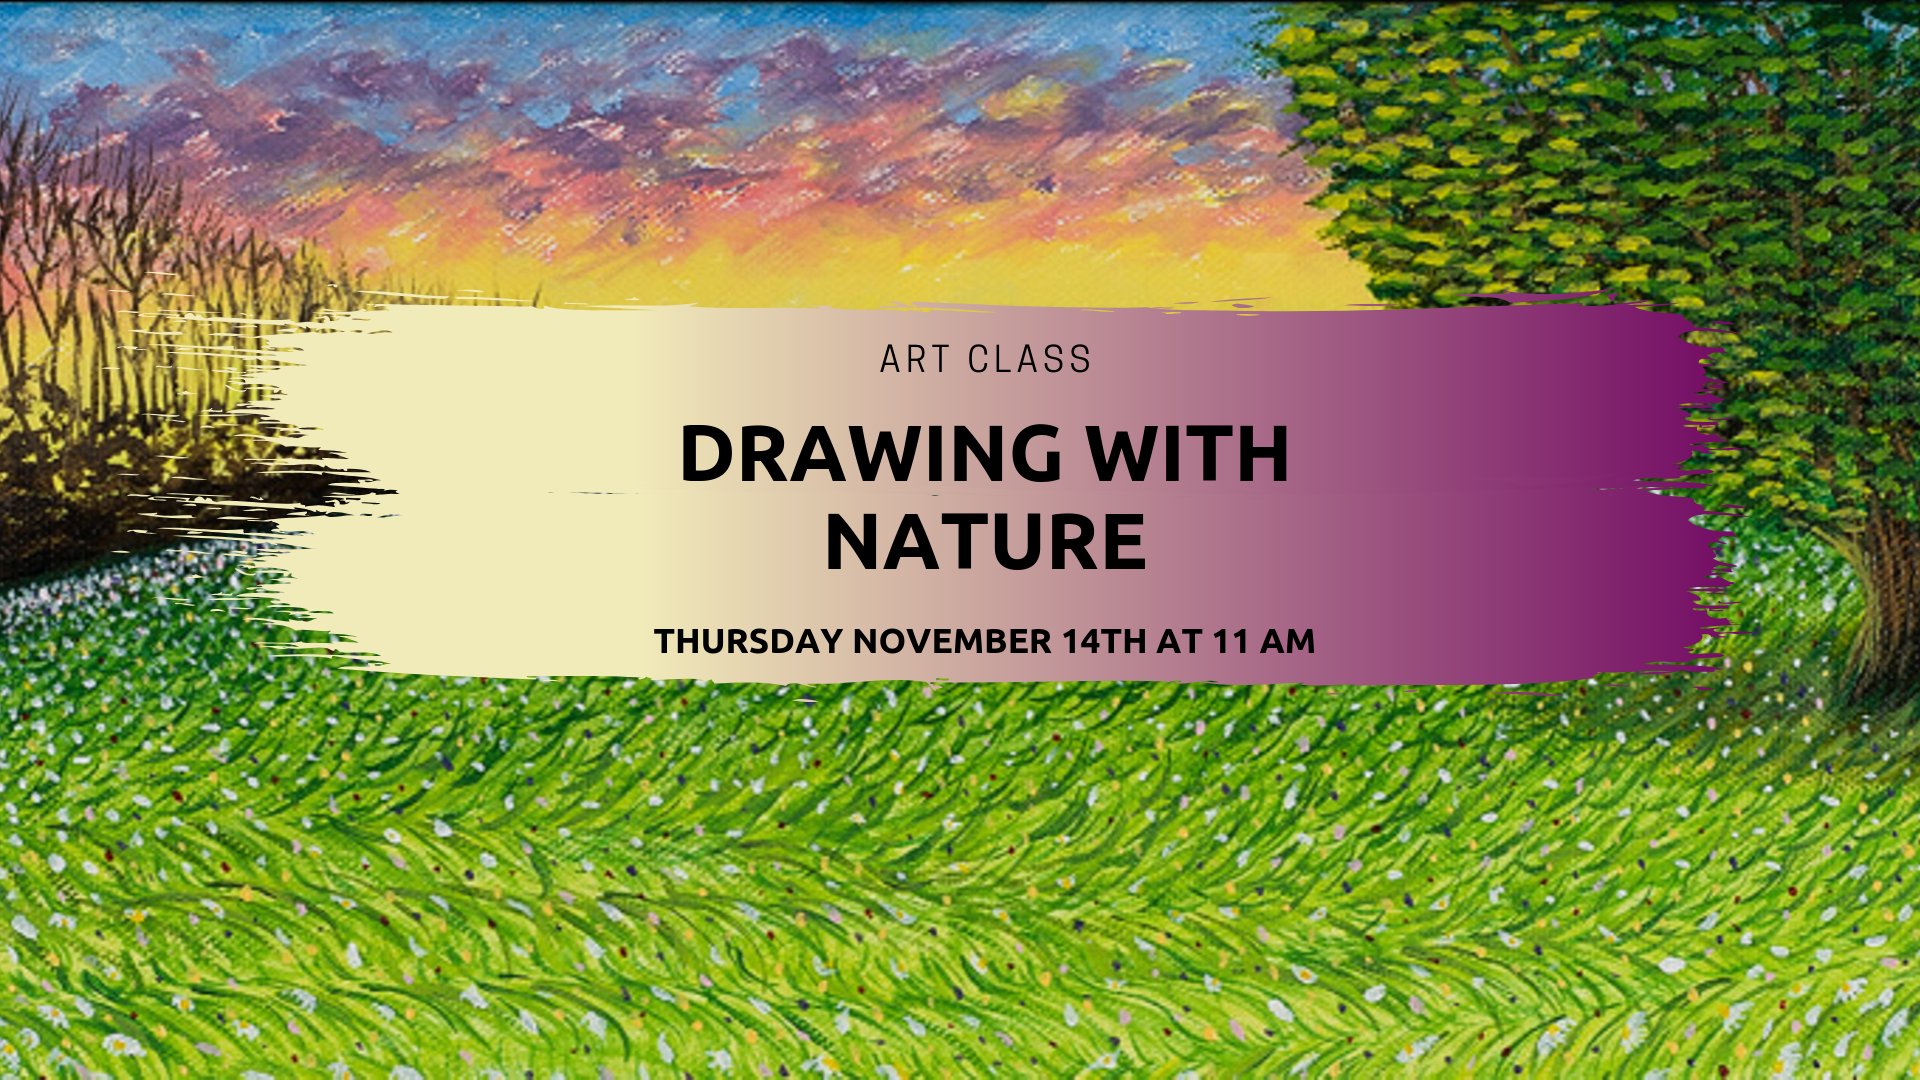 Art Class - Drawing with Nature